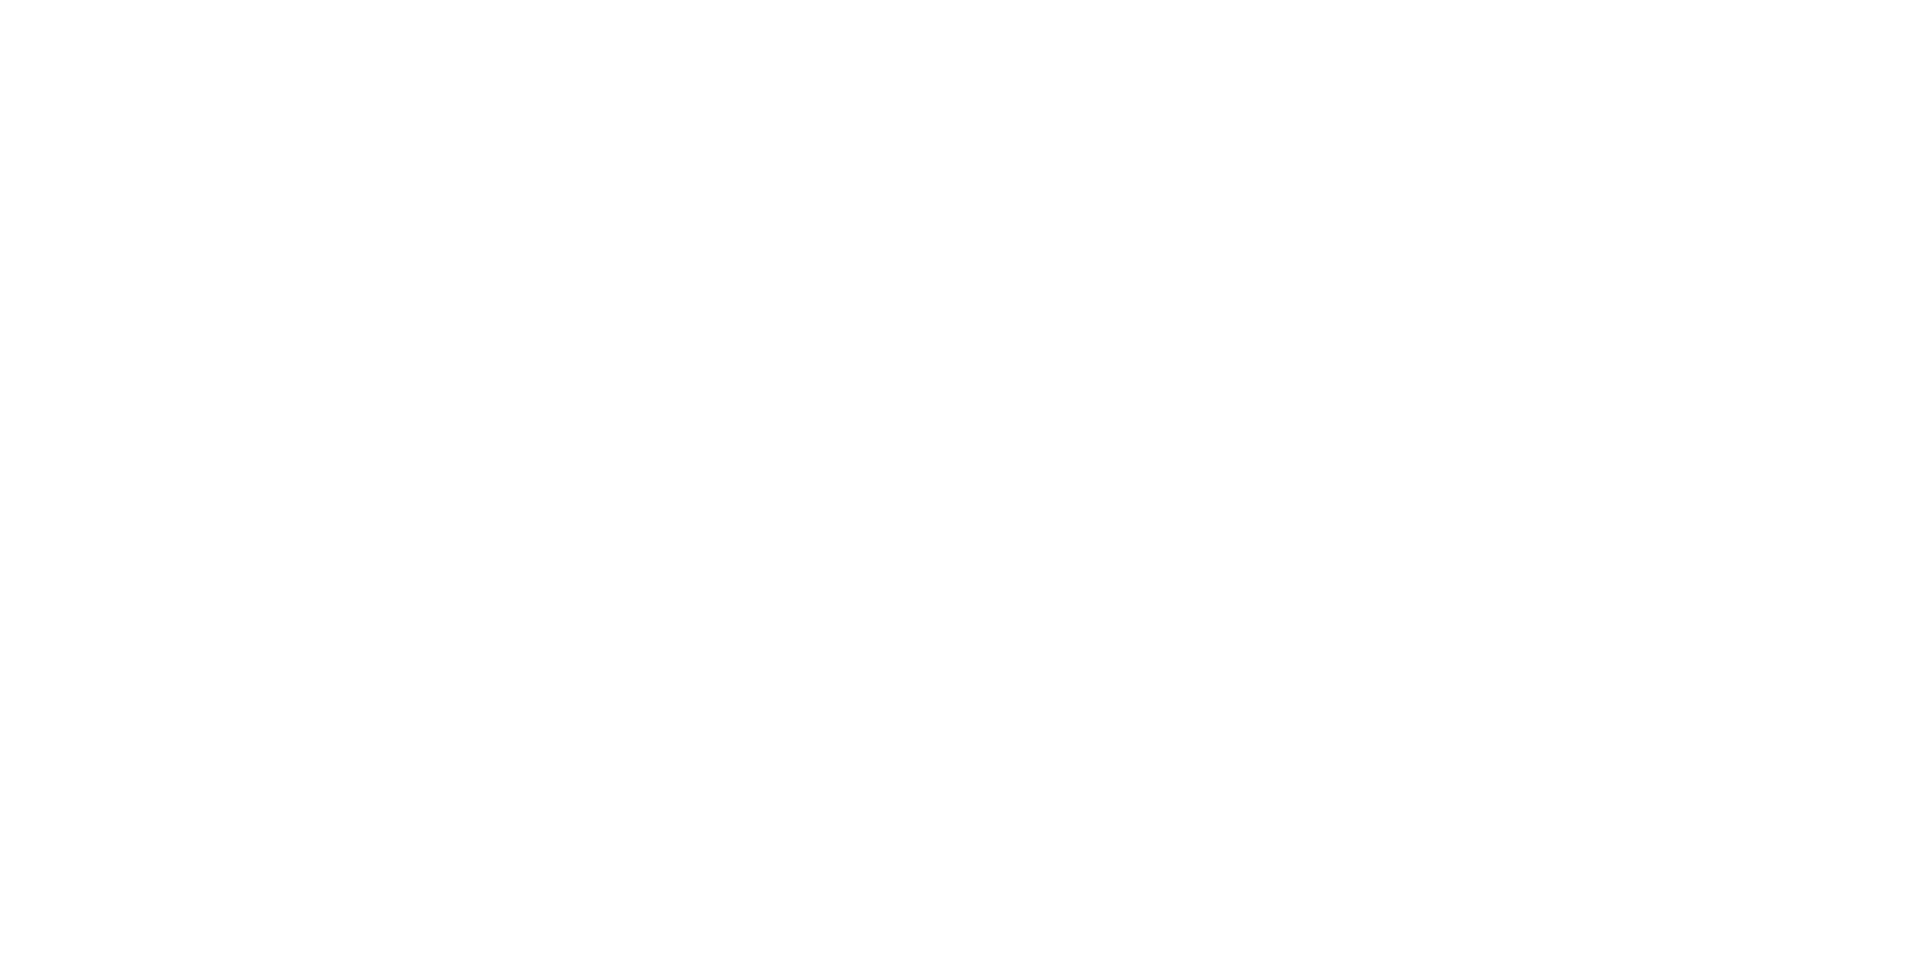 You Can Read More About the Brilliant StrEat Food Awards and StrEat Food Challenge Here